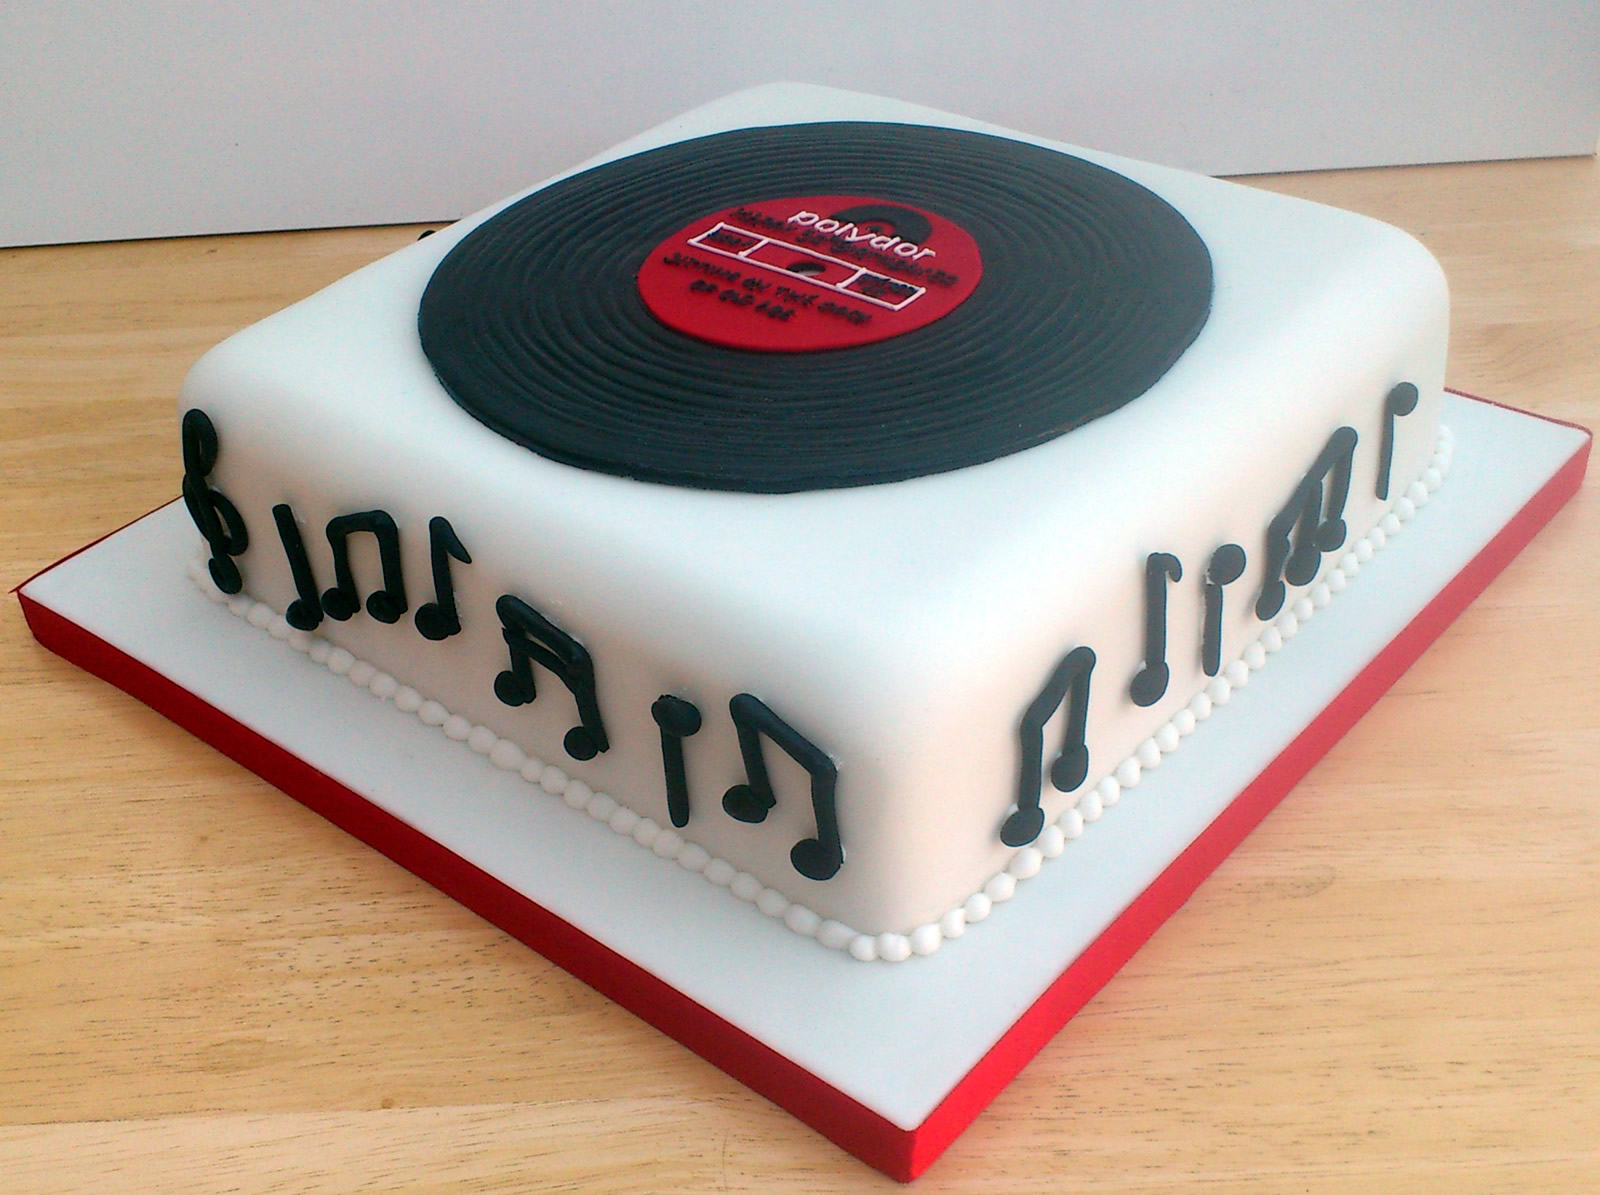 Pin Vinyl Record Art Make And Crafts With Records Hgtv Cake on